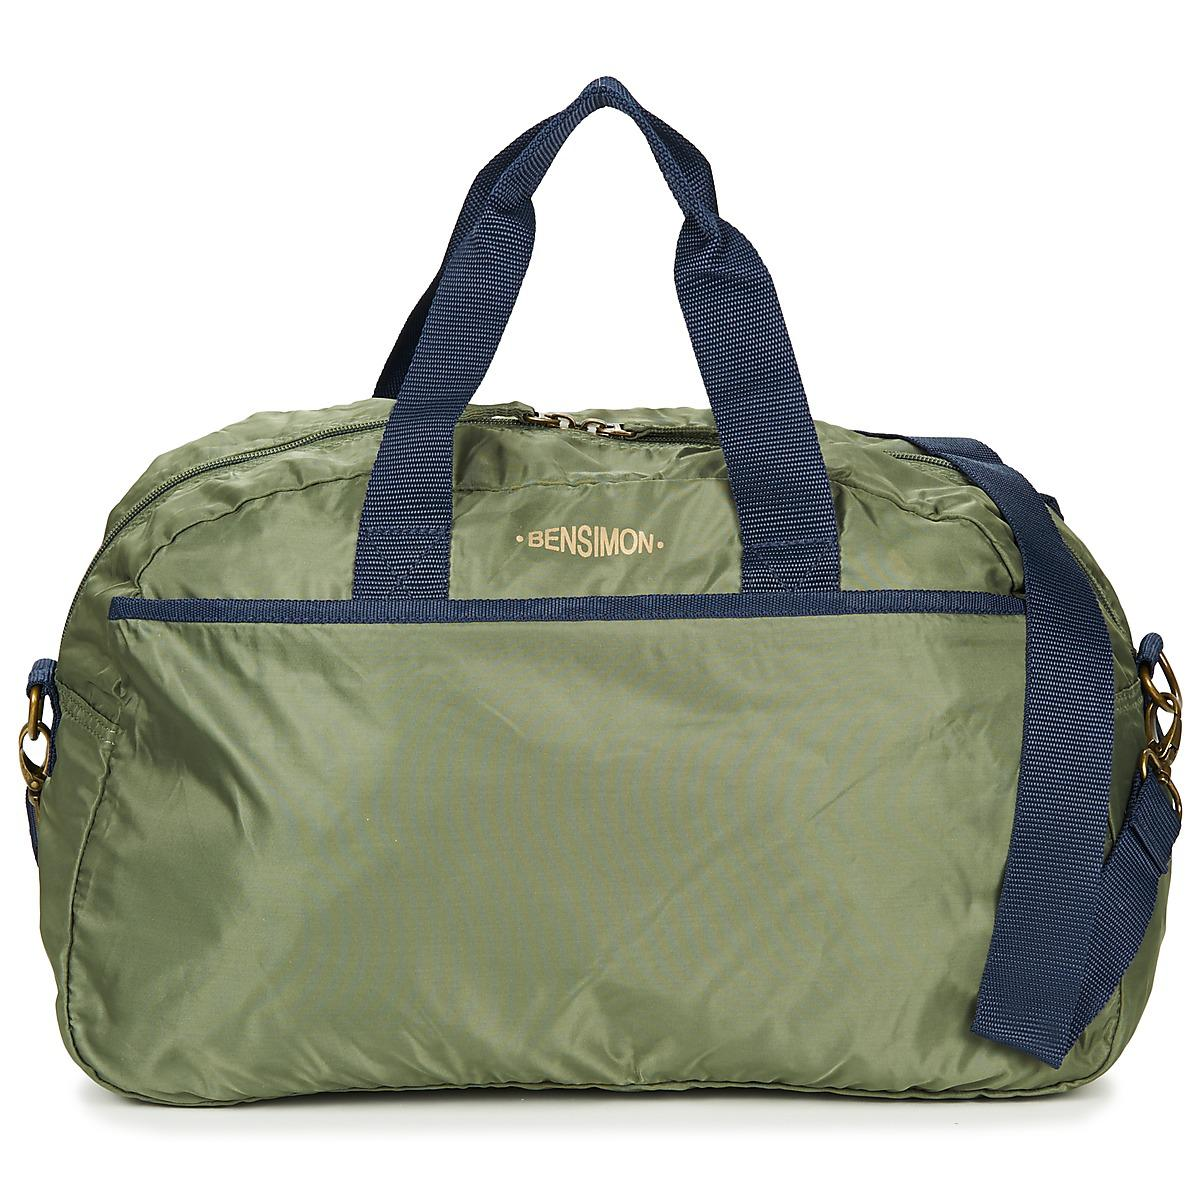 2a374c56ce0d Bensimon Sport Bag Men s Sports Bag In Green in Green for Men - Lyst